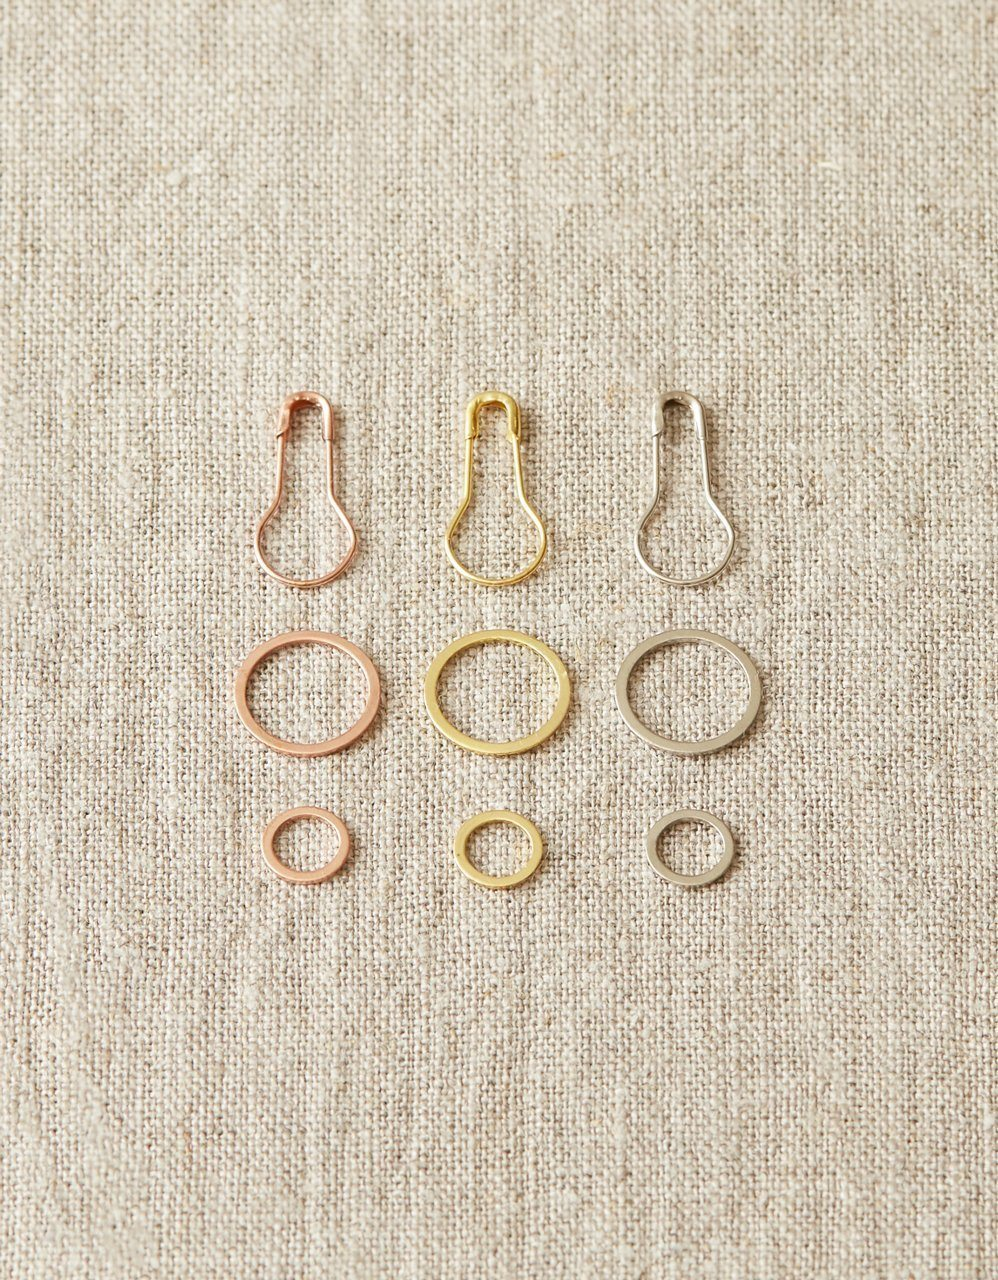 Precious Metal Stitch Markers Cocoknits Stitch Markers & Row Counters